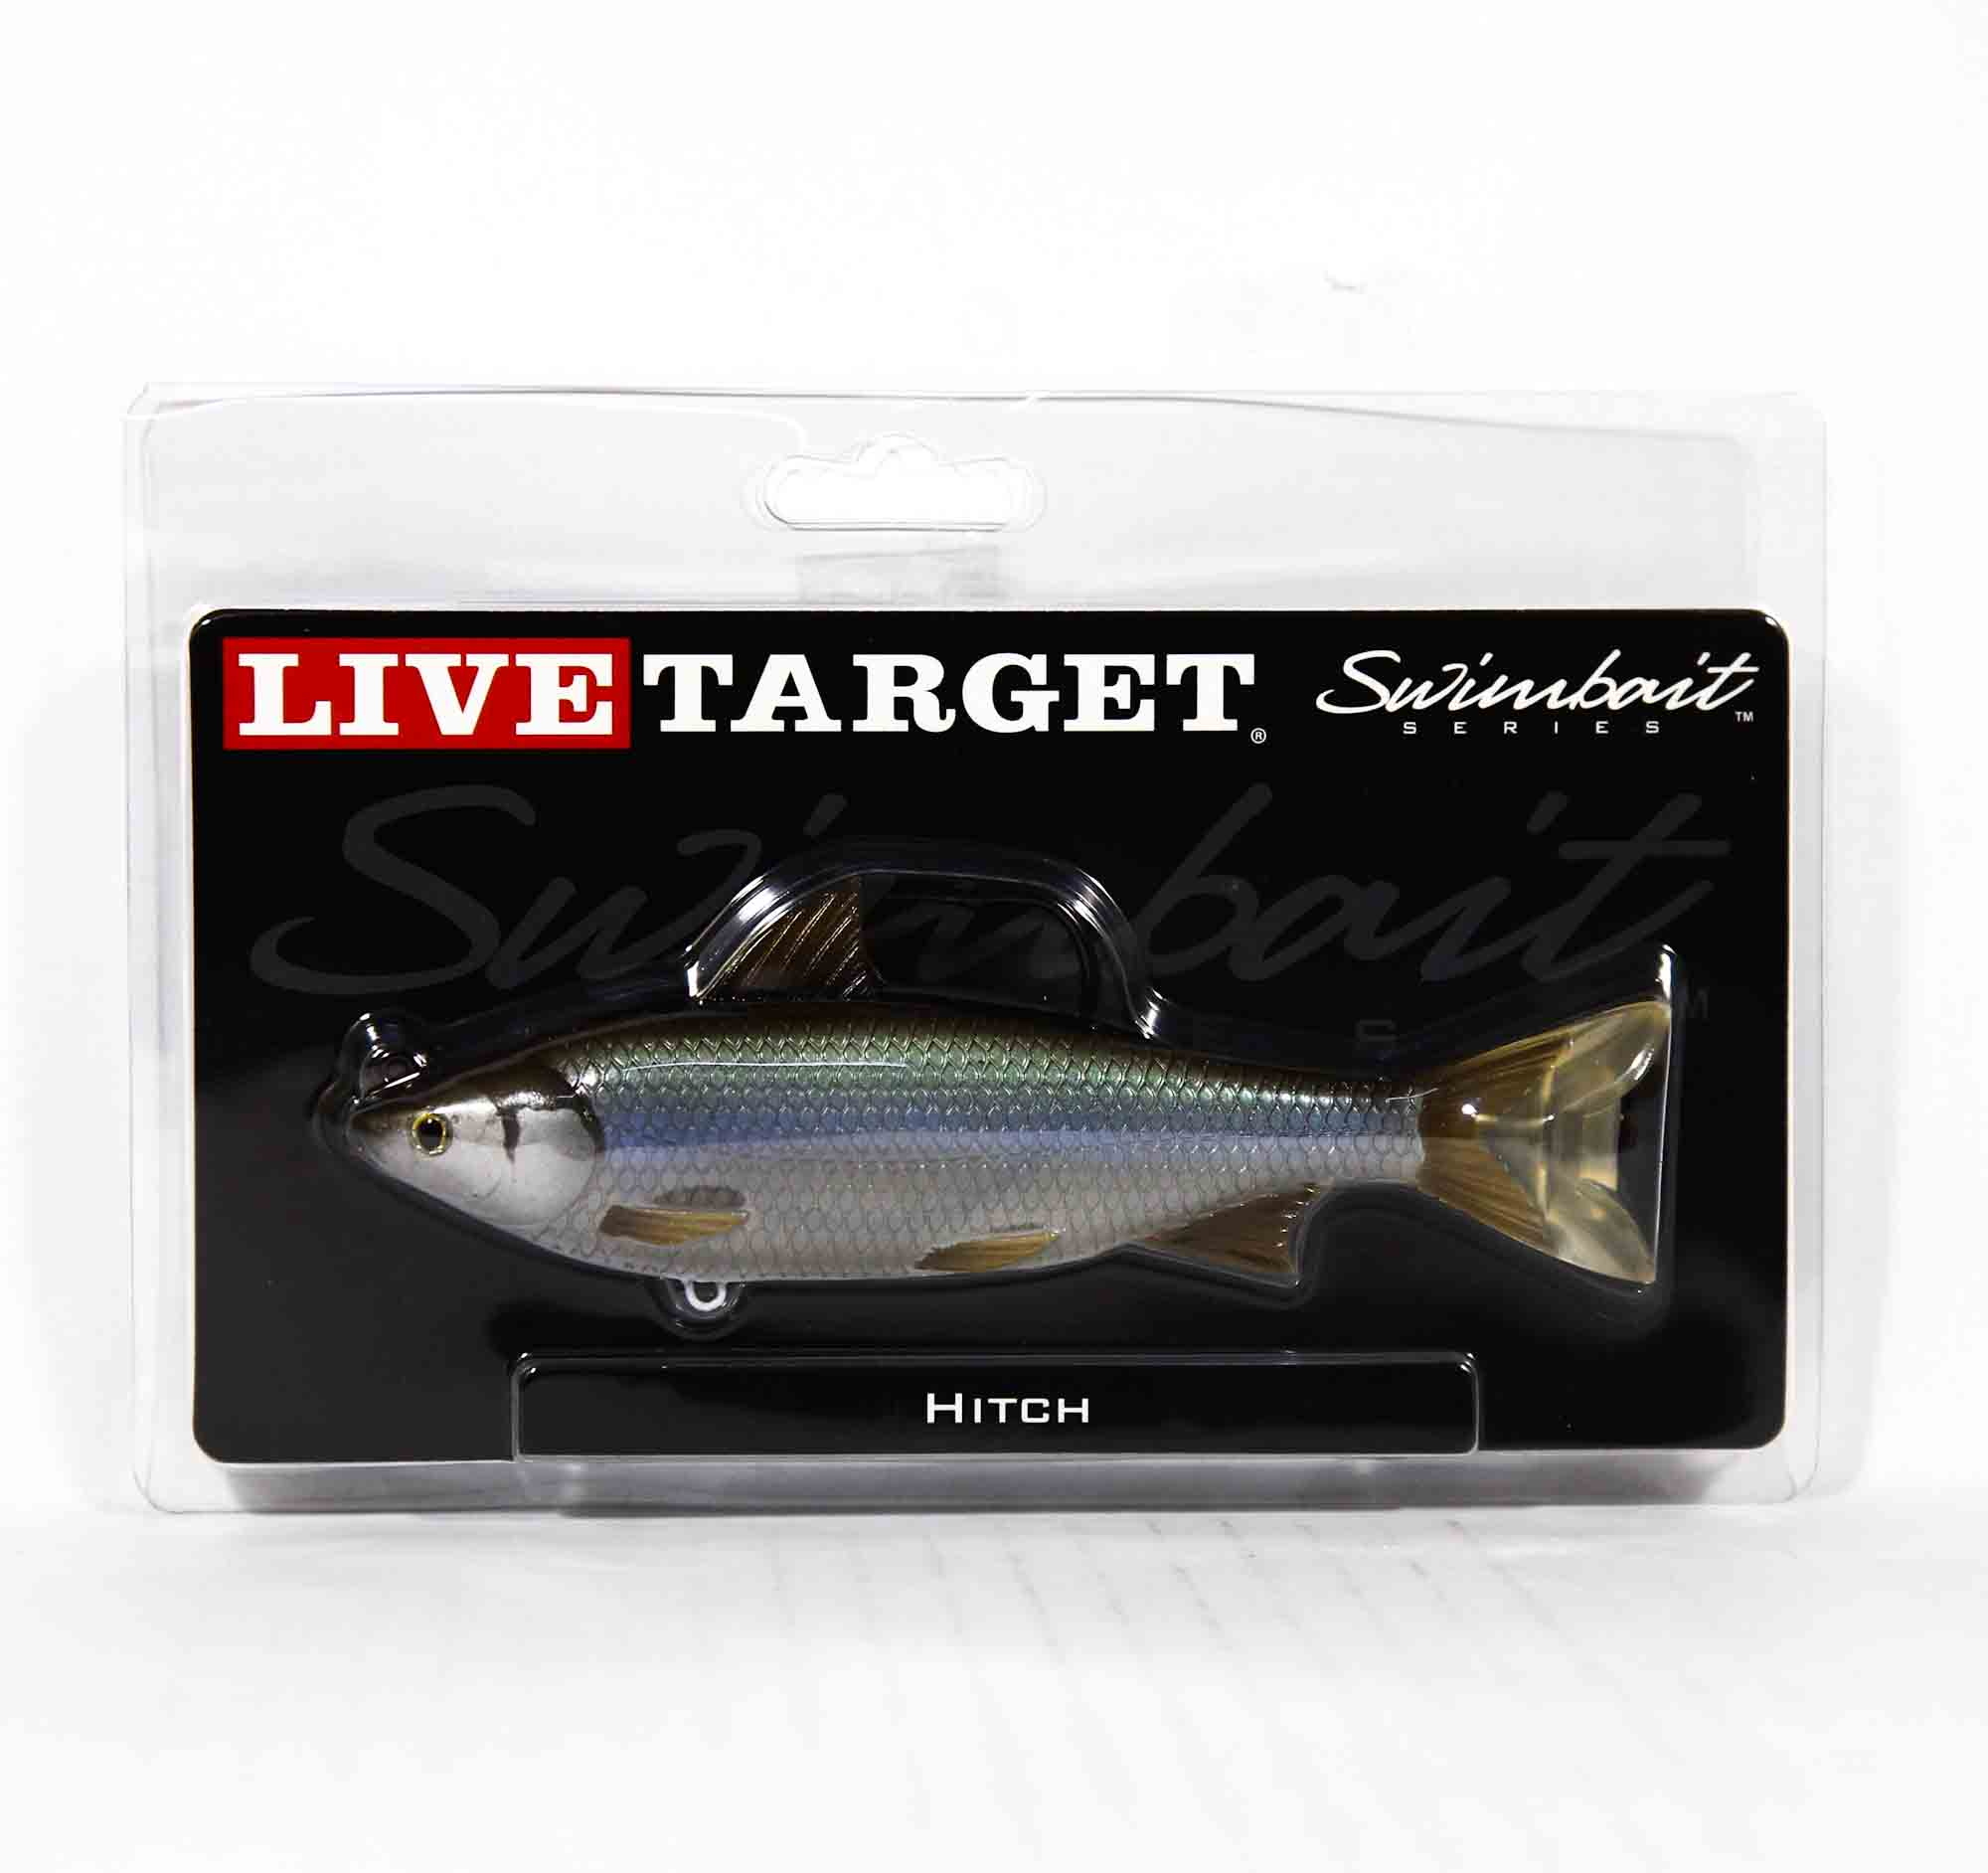 Live Target HTS150MS255 Swimbait Hitch 5.75 Inch N Green (1283)